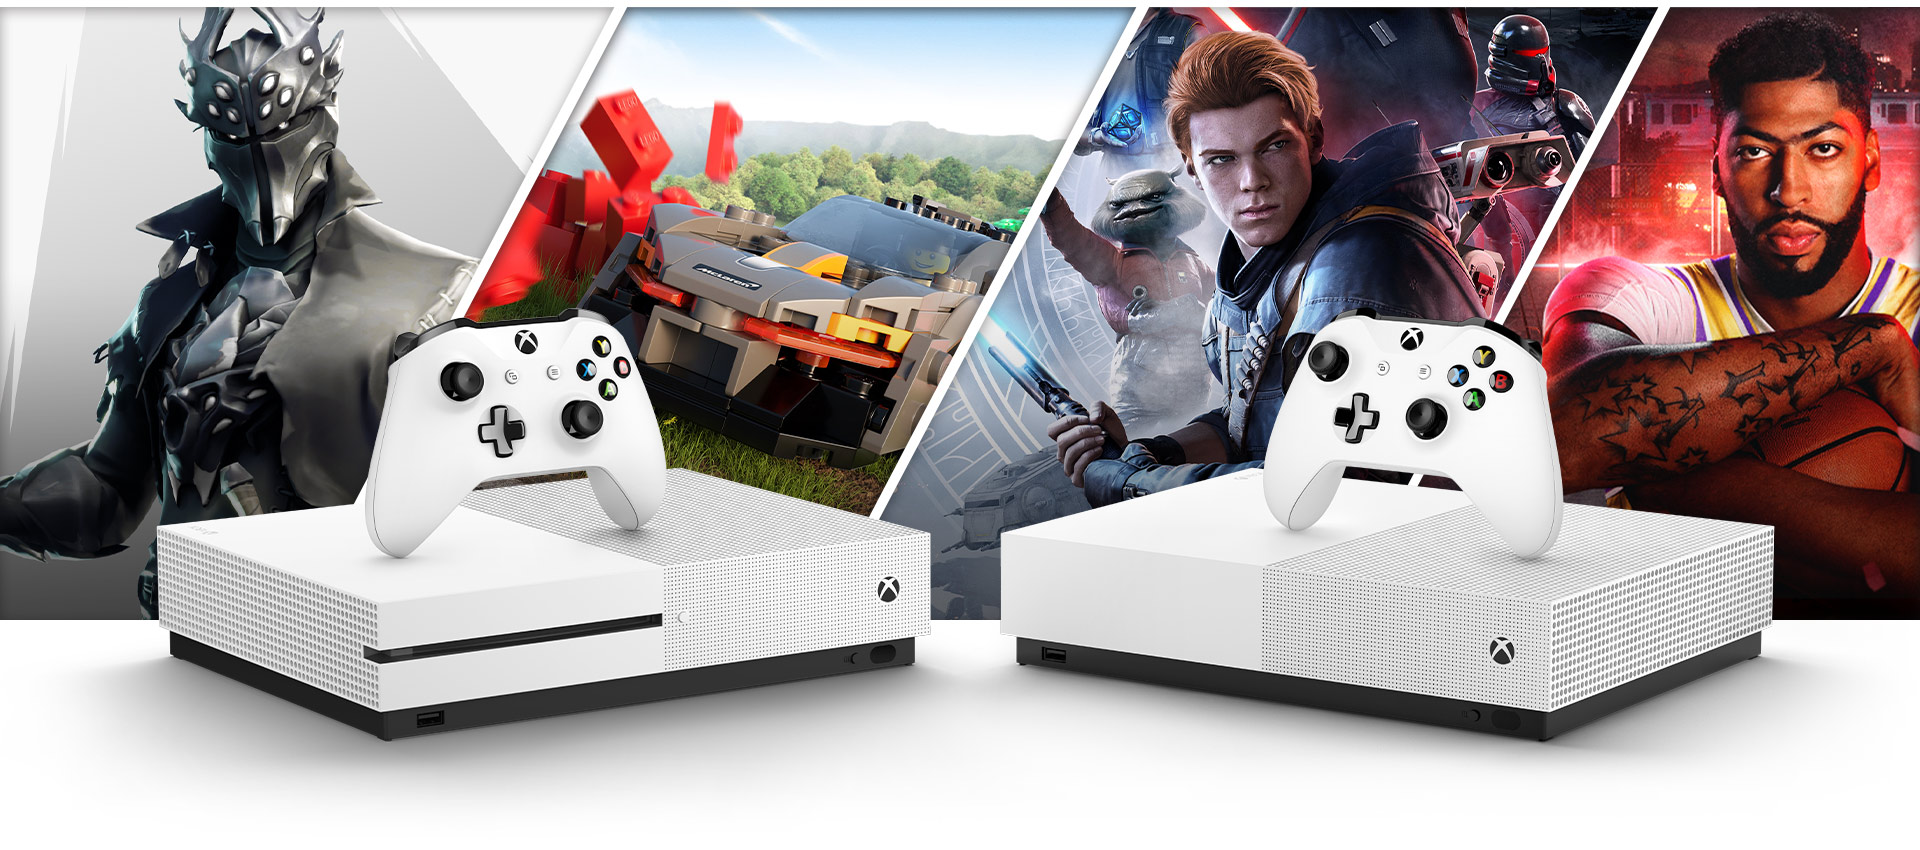 Illustrations de Fortnite, Forza Horizon 4, Star Wars Jedi Fallen Order et NBA 2K20 derrière une Xbox One S et une Xbox One S All Digital